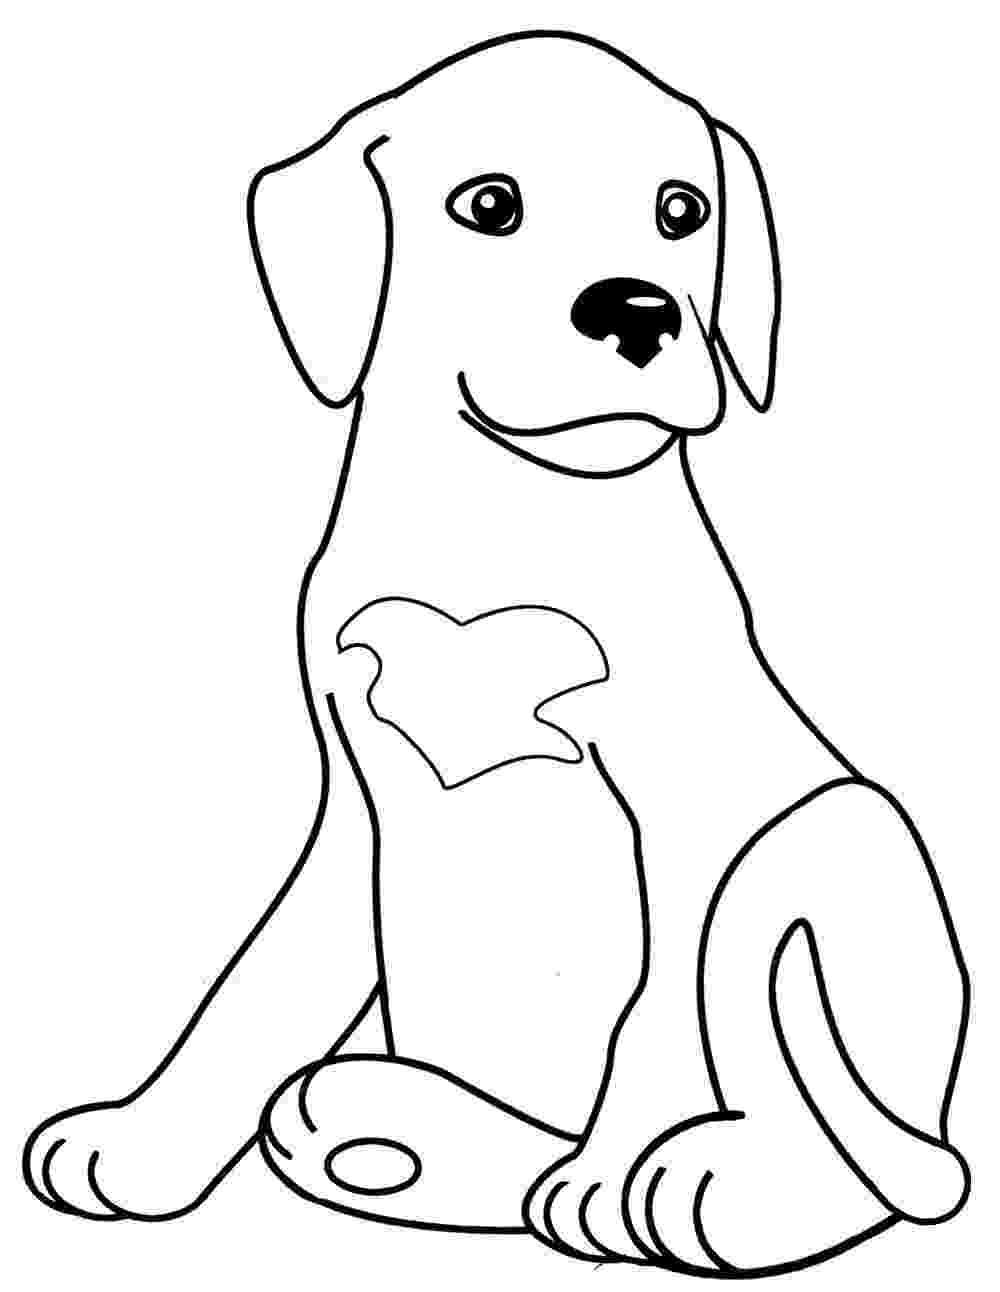 free online dog coloring pages dog coloring pages for kids print them online for free free pages dog online coloring